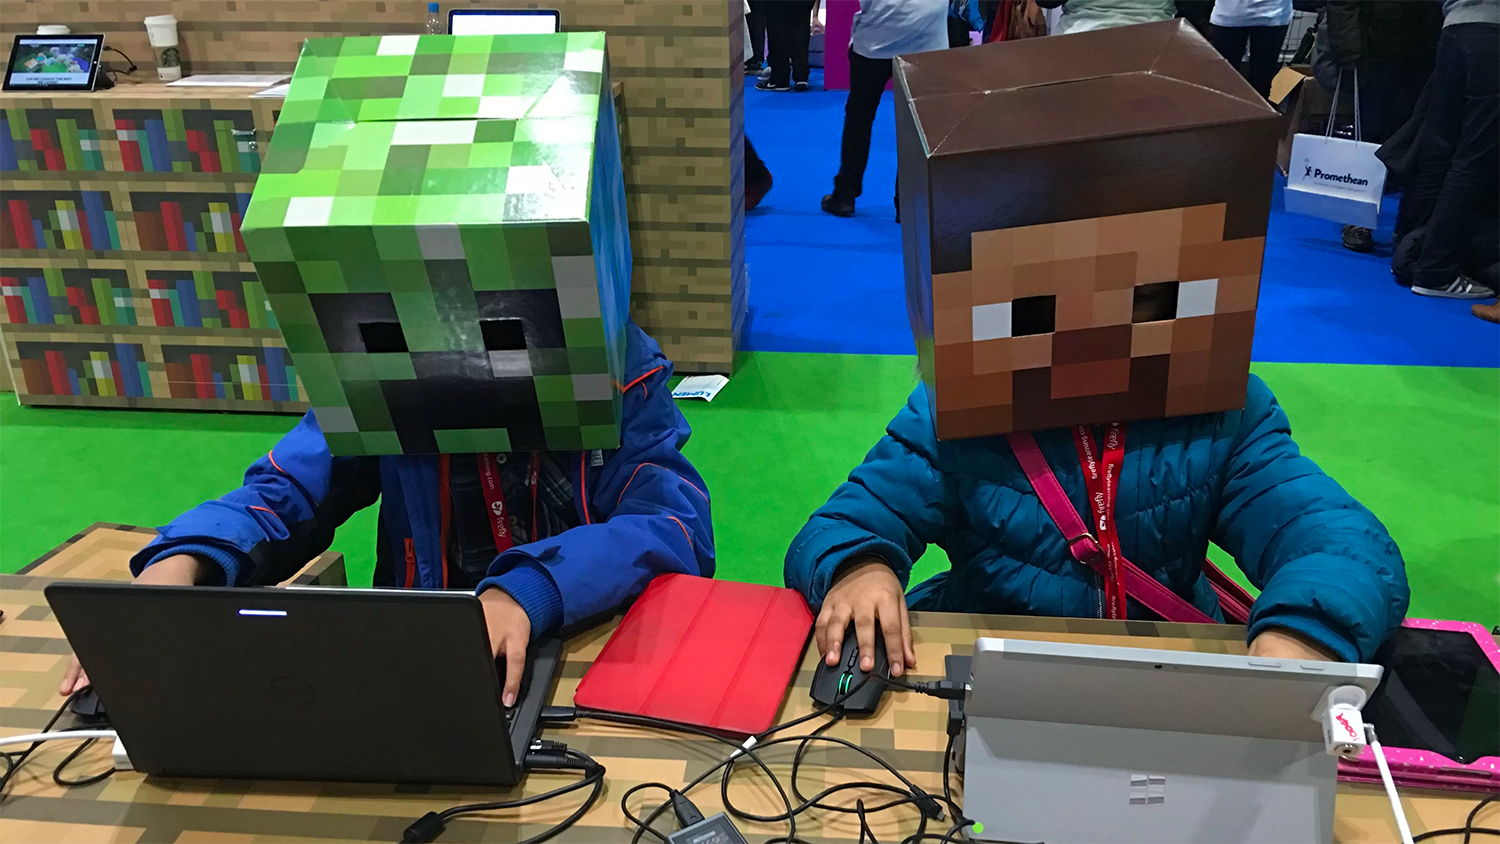 Two students build in Minecraft at BETT Conference Click here to find out more!